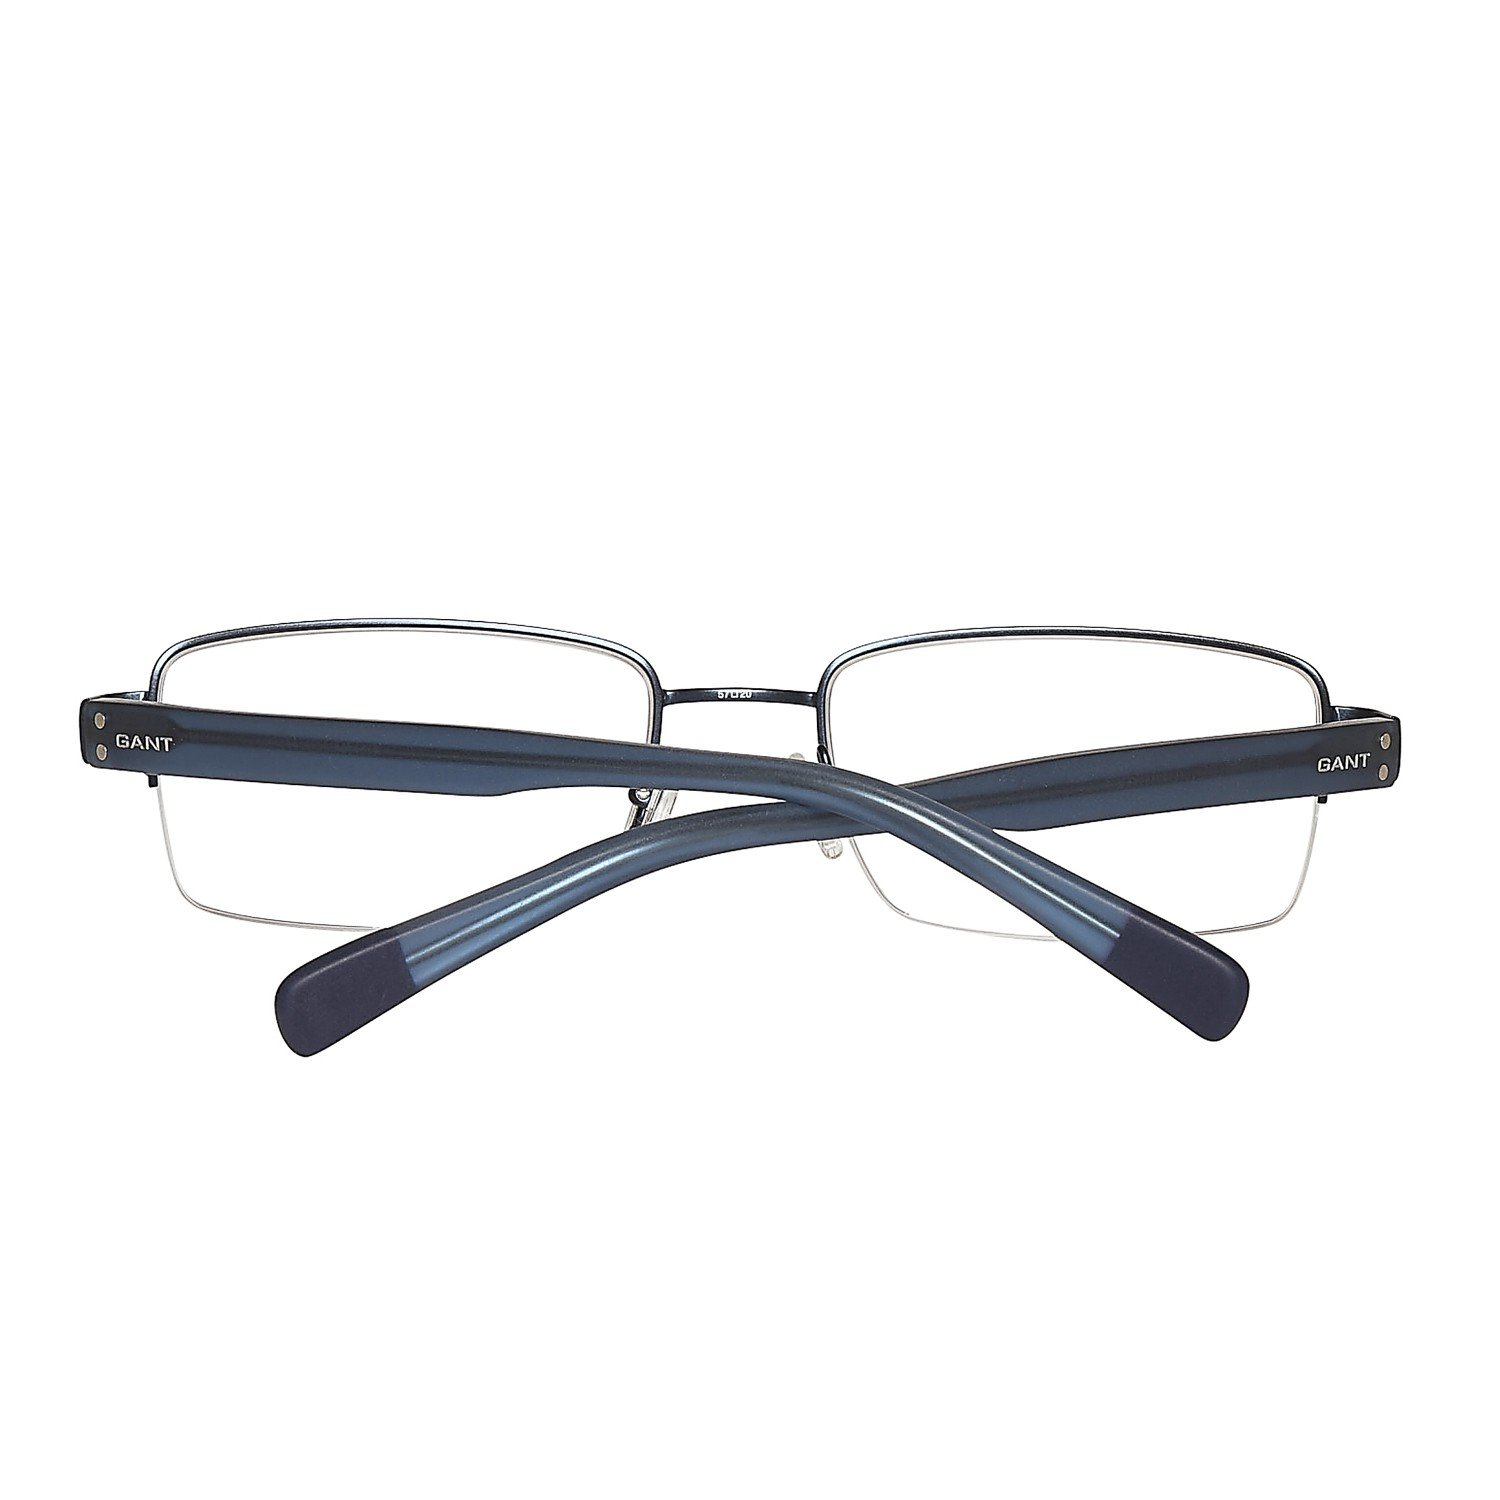 Amazon.com: Gant G 3040 R58 57 mm brillante azul Lentes ...